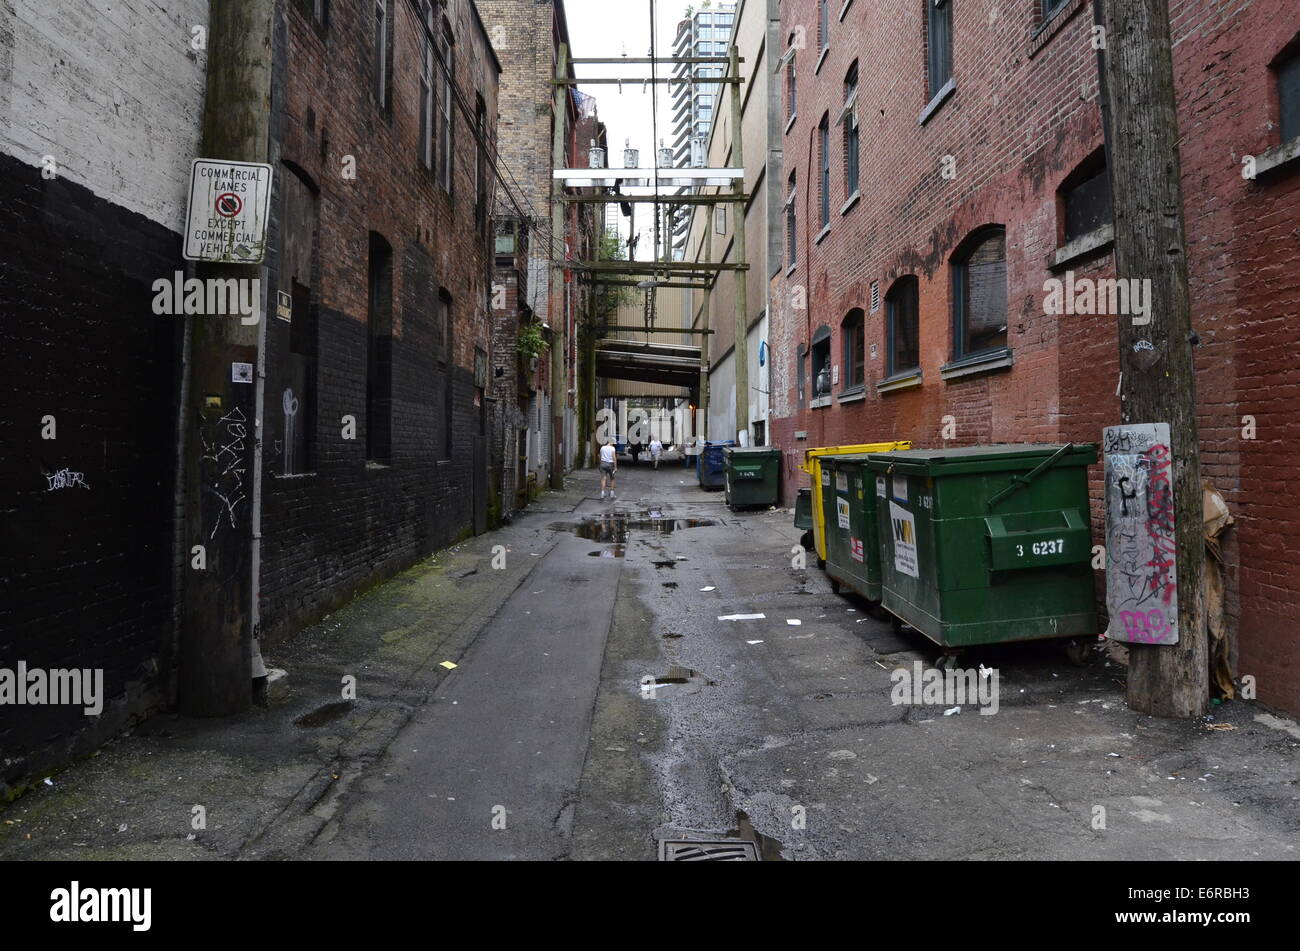 A dirty alley in Vancouver - Stock Image